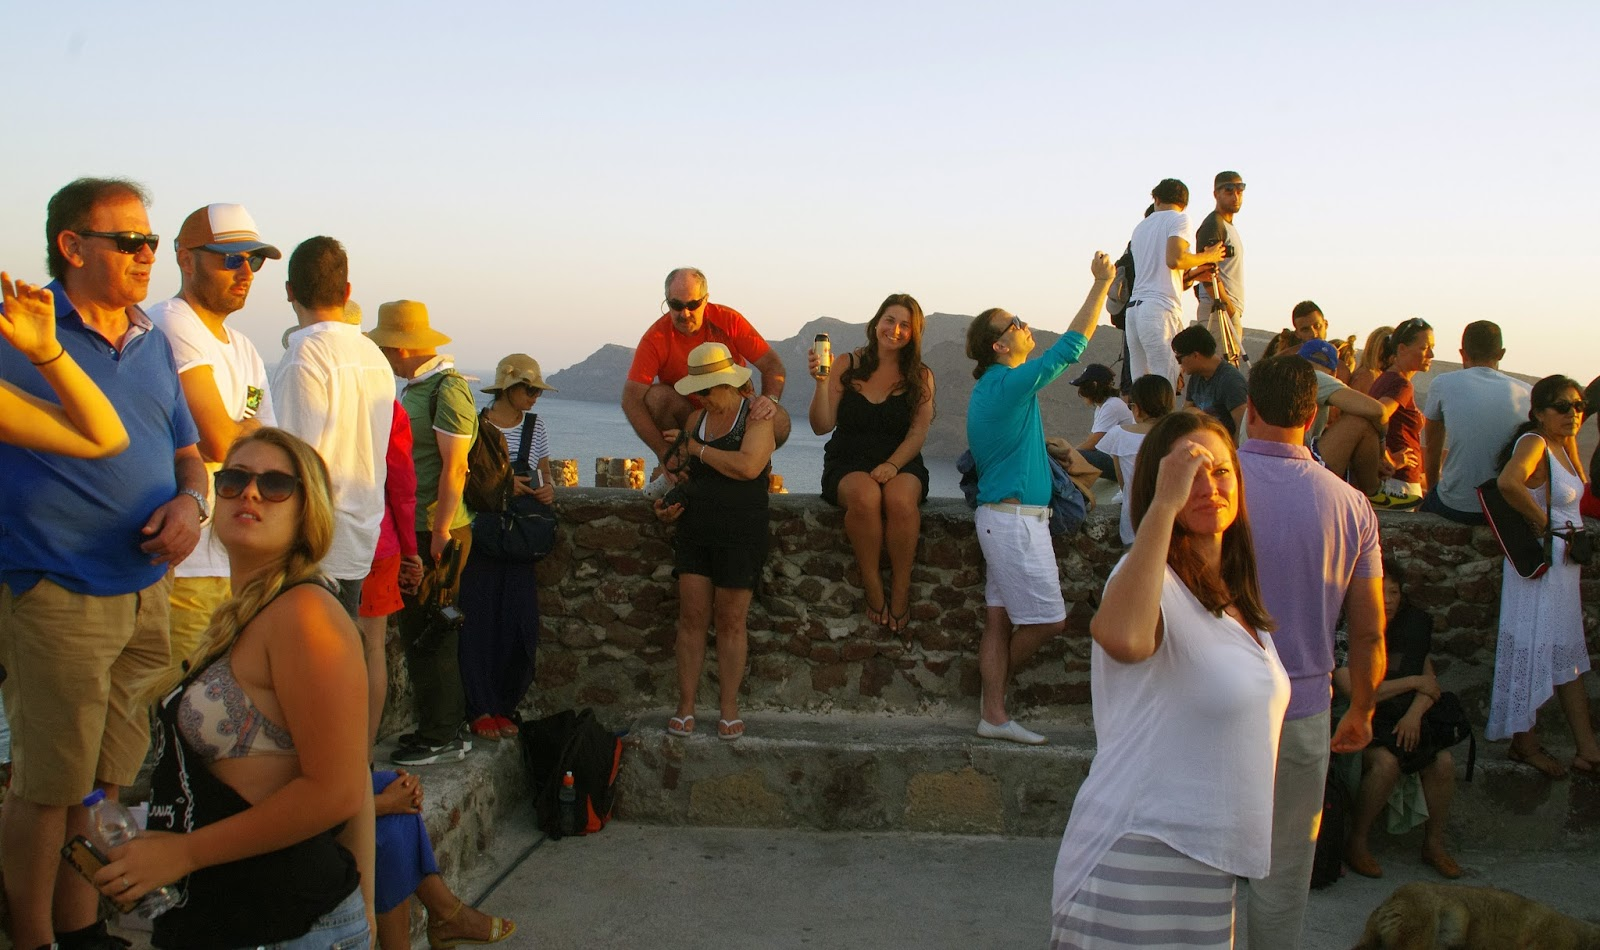 Crowds at Oia Sunset Santorini